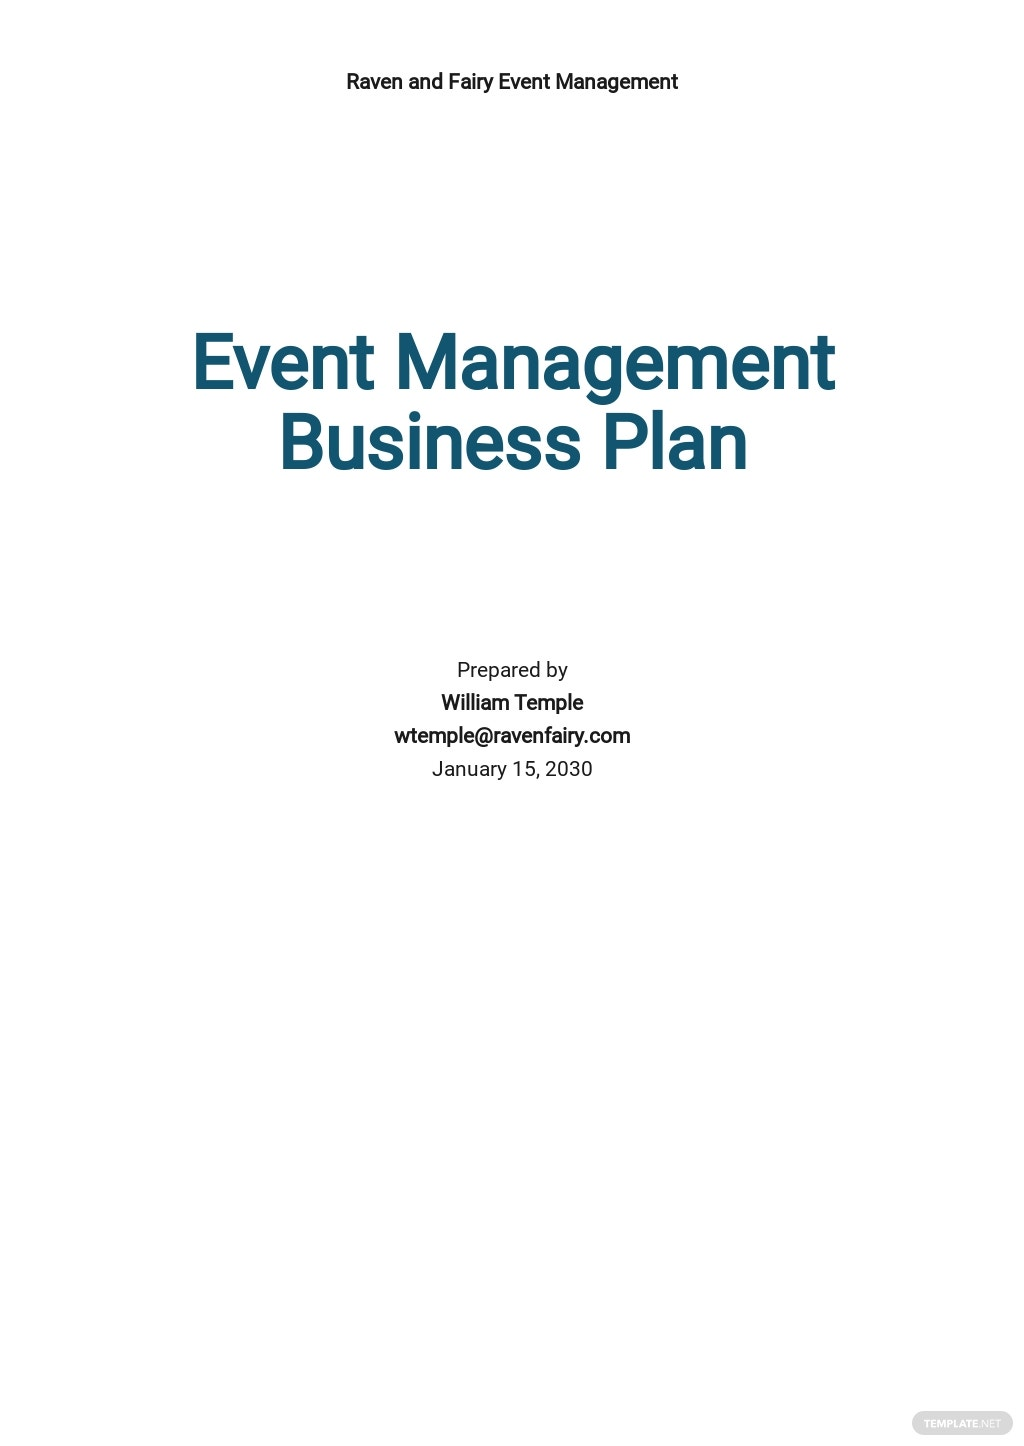 Event Management Business Plan Template